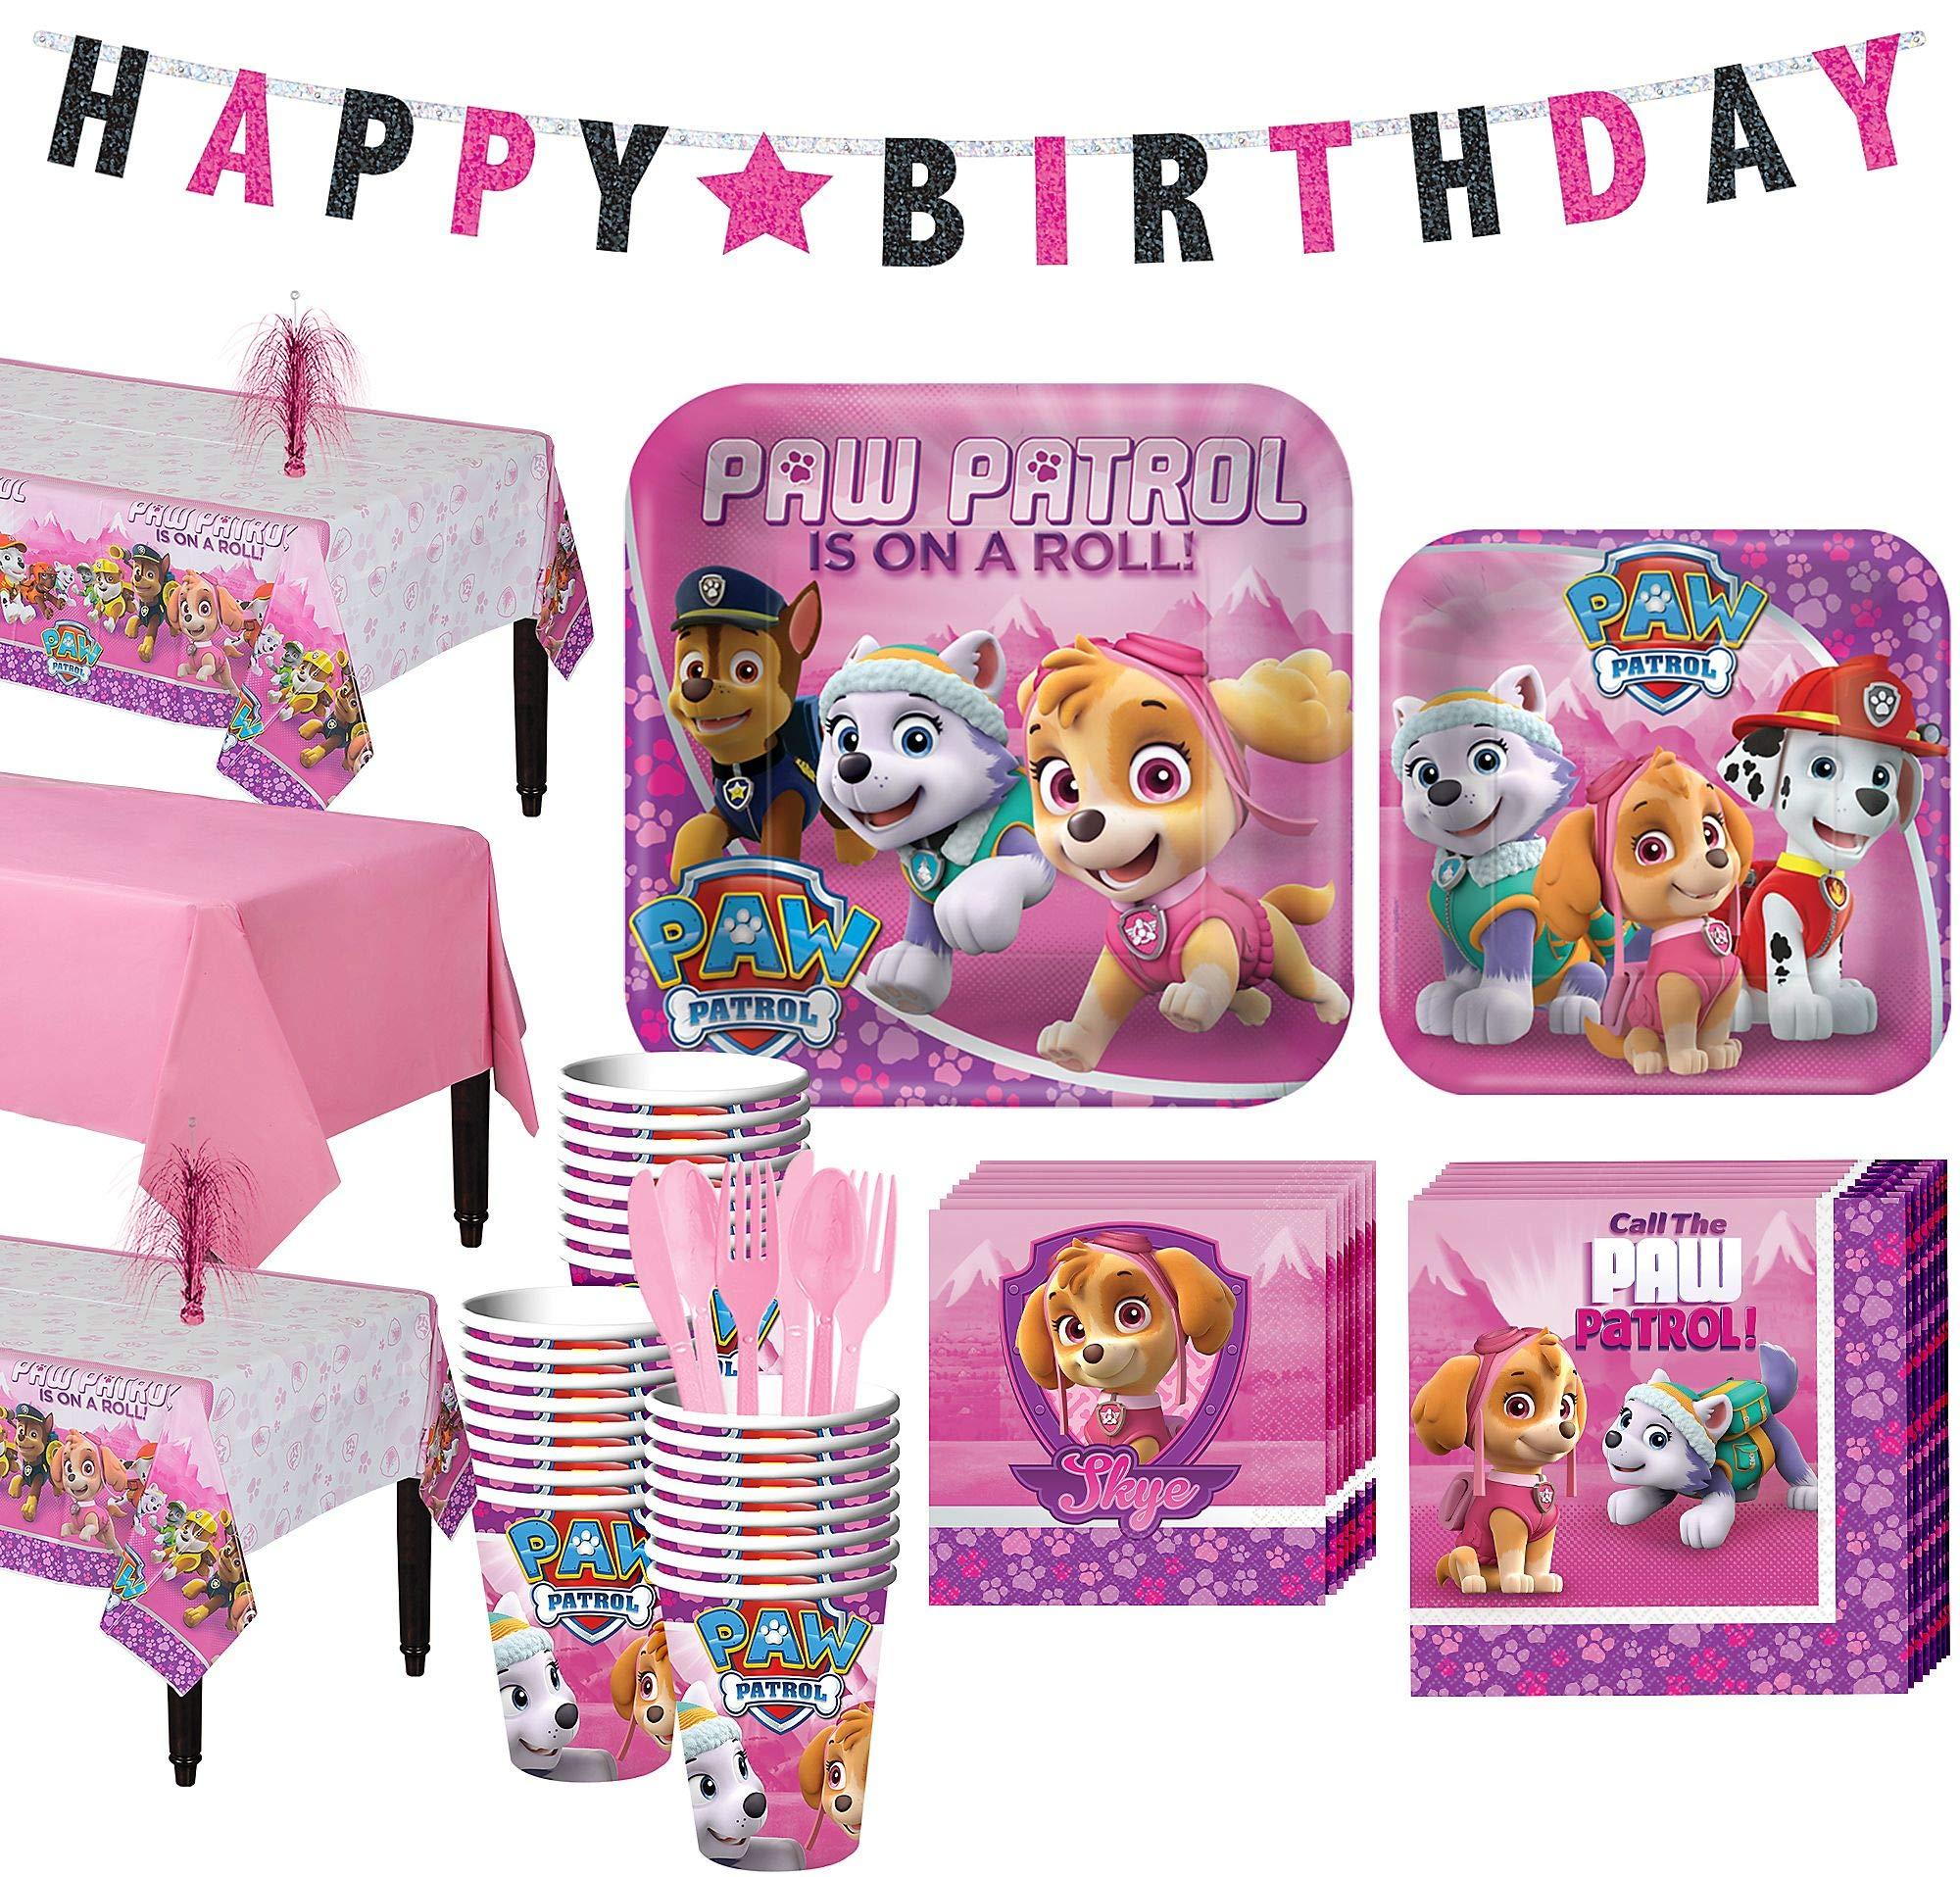 Party City Pink PAW Patrol Tableware Party Supplies for 24 Guests, Include Plates, Napkins, Utensils, a Banner, and More